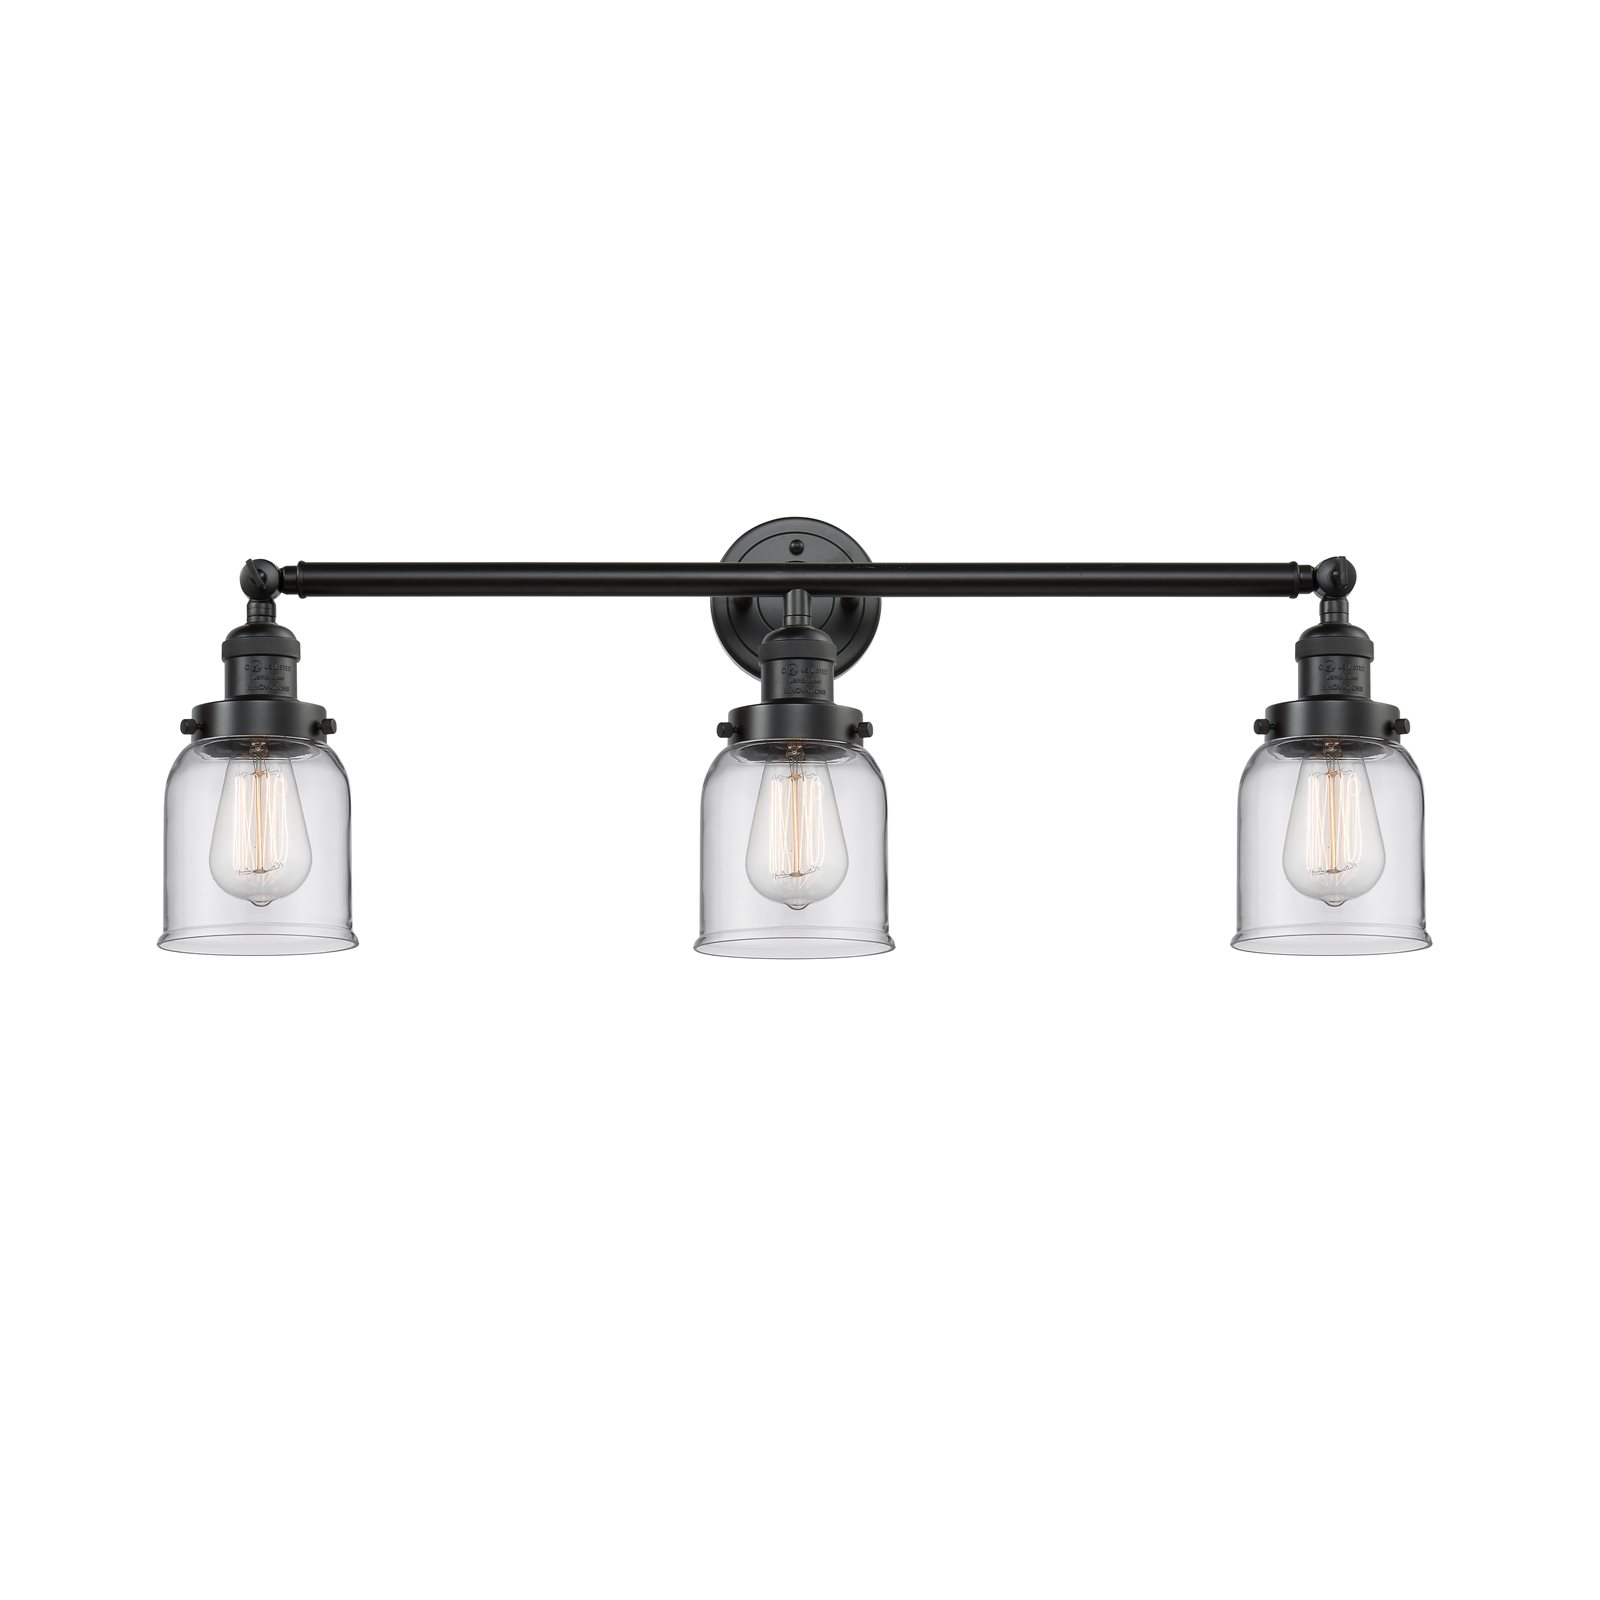 3 light bathroom fixture western bathroom light bathroom fixture innovations small bell oiled rubbed bronze